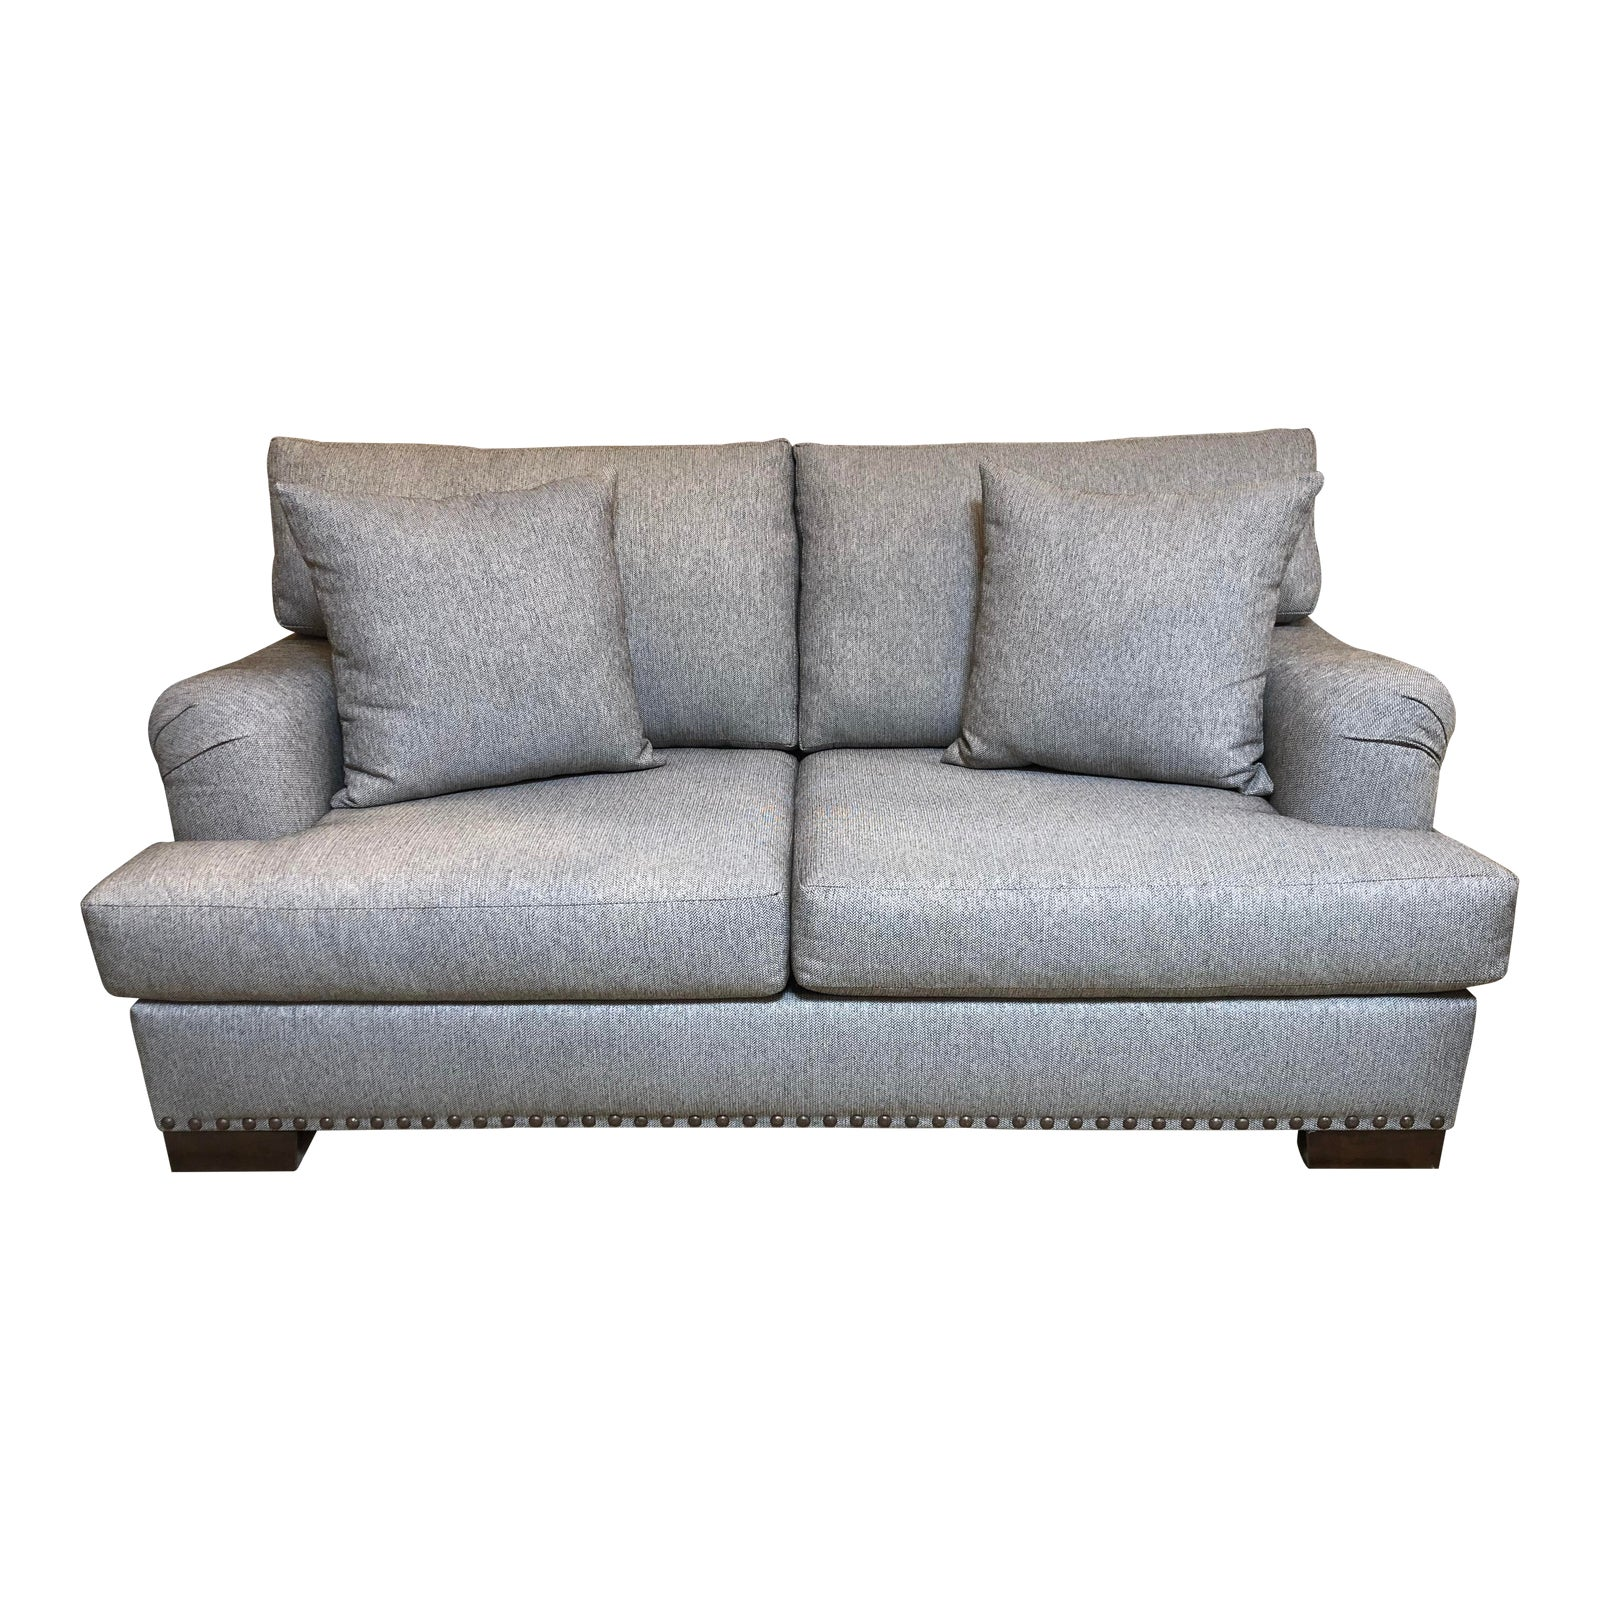 New custom apartment size sofa by california sofa - Best sectionals for apartments ...